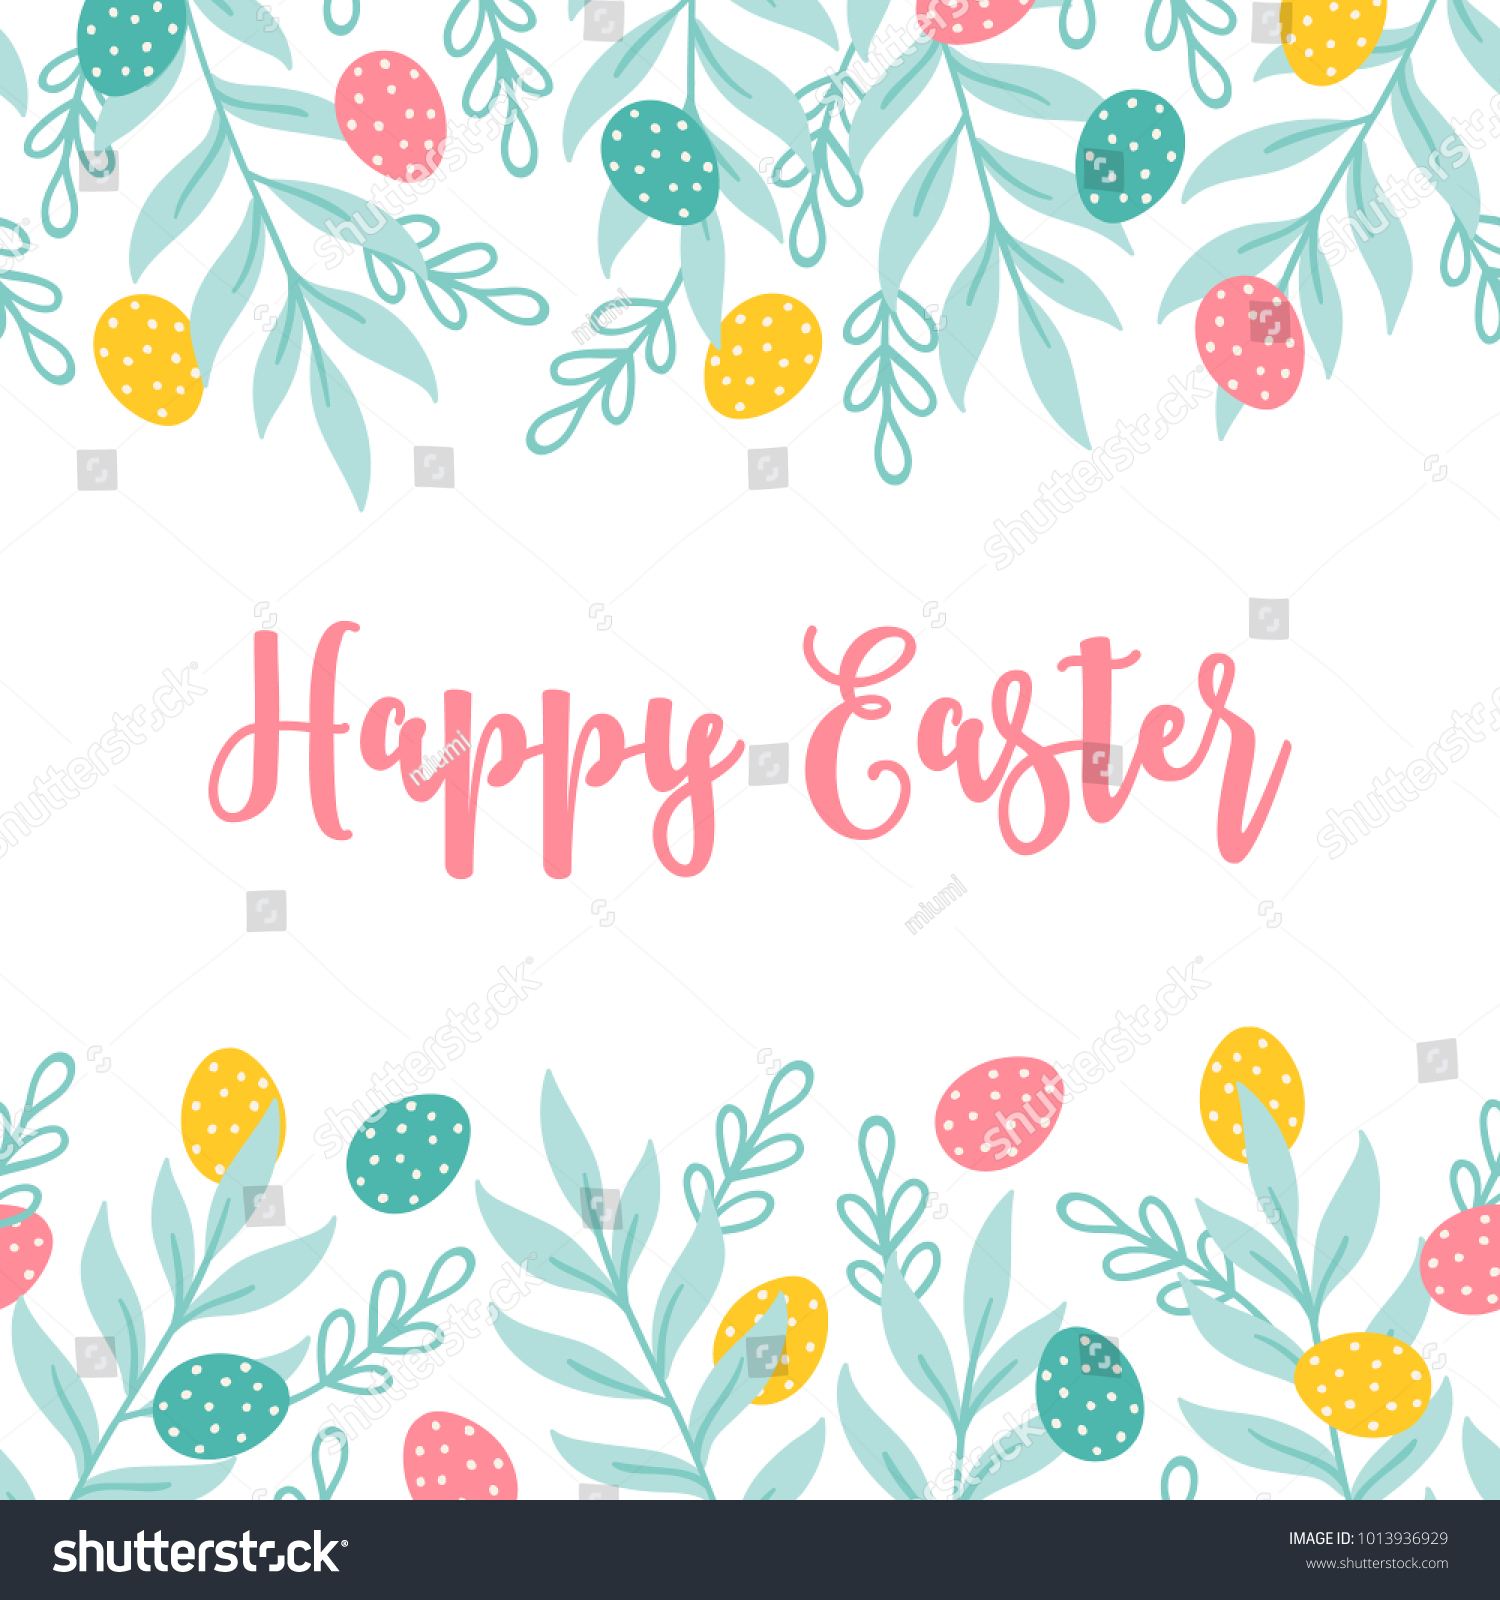 Easter Greeting Card Seamless Floral Border Stock Vector Royalty